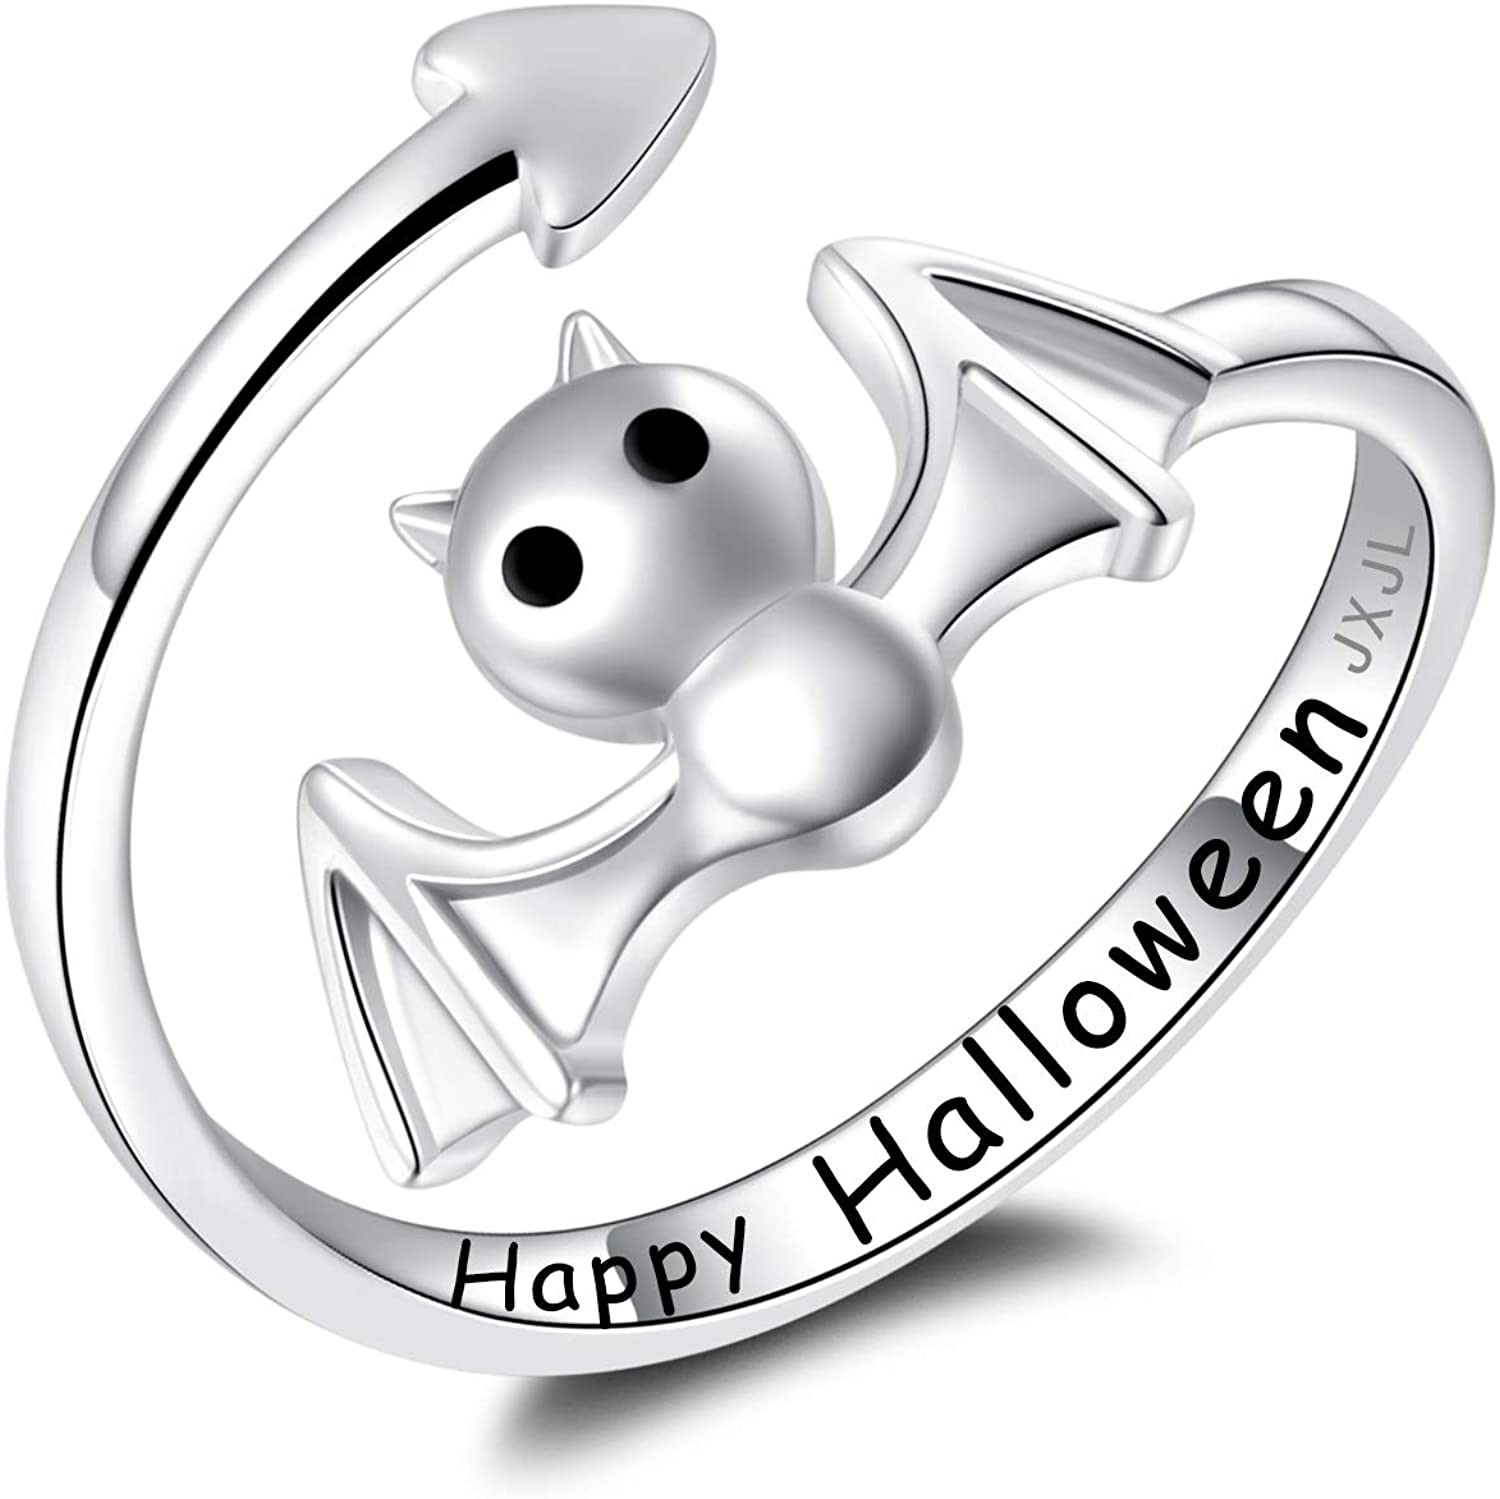 S925 Sterling Silver Bat Ring Happy Halloween Party Gift Cute Witch Costume Bat Jewelry for Teens Women Girls